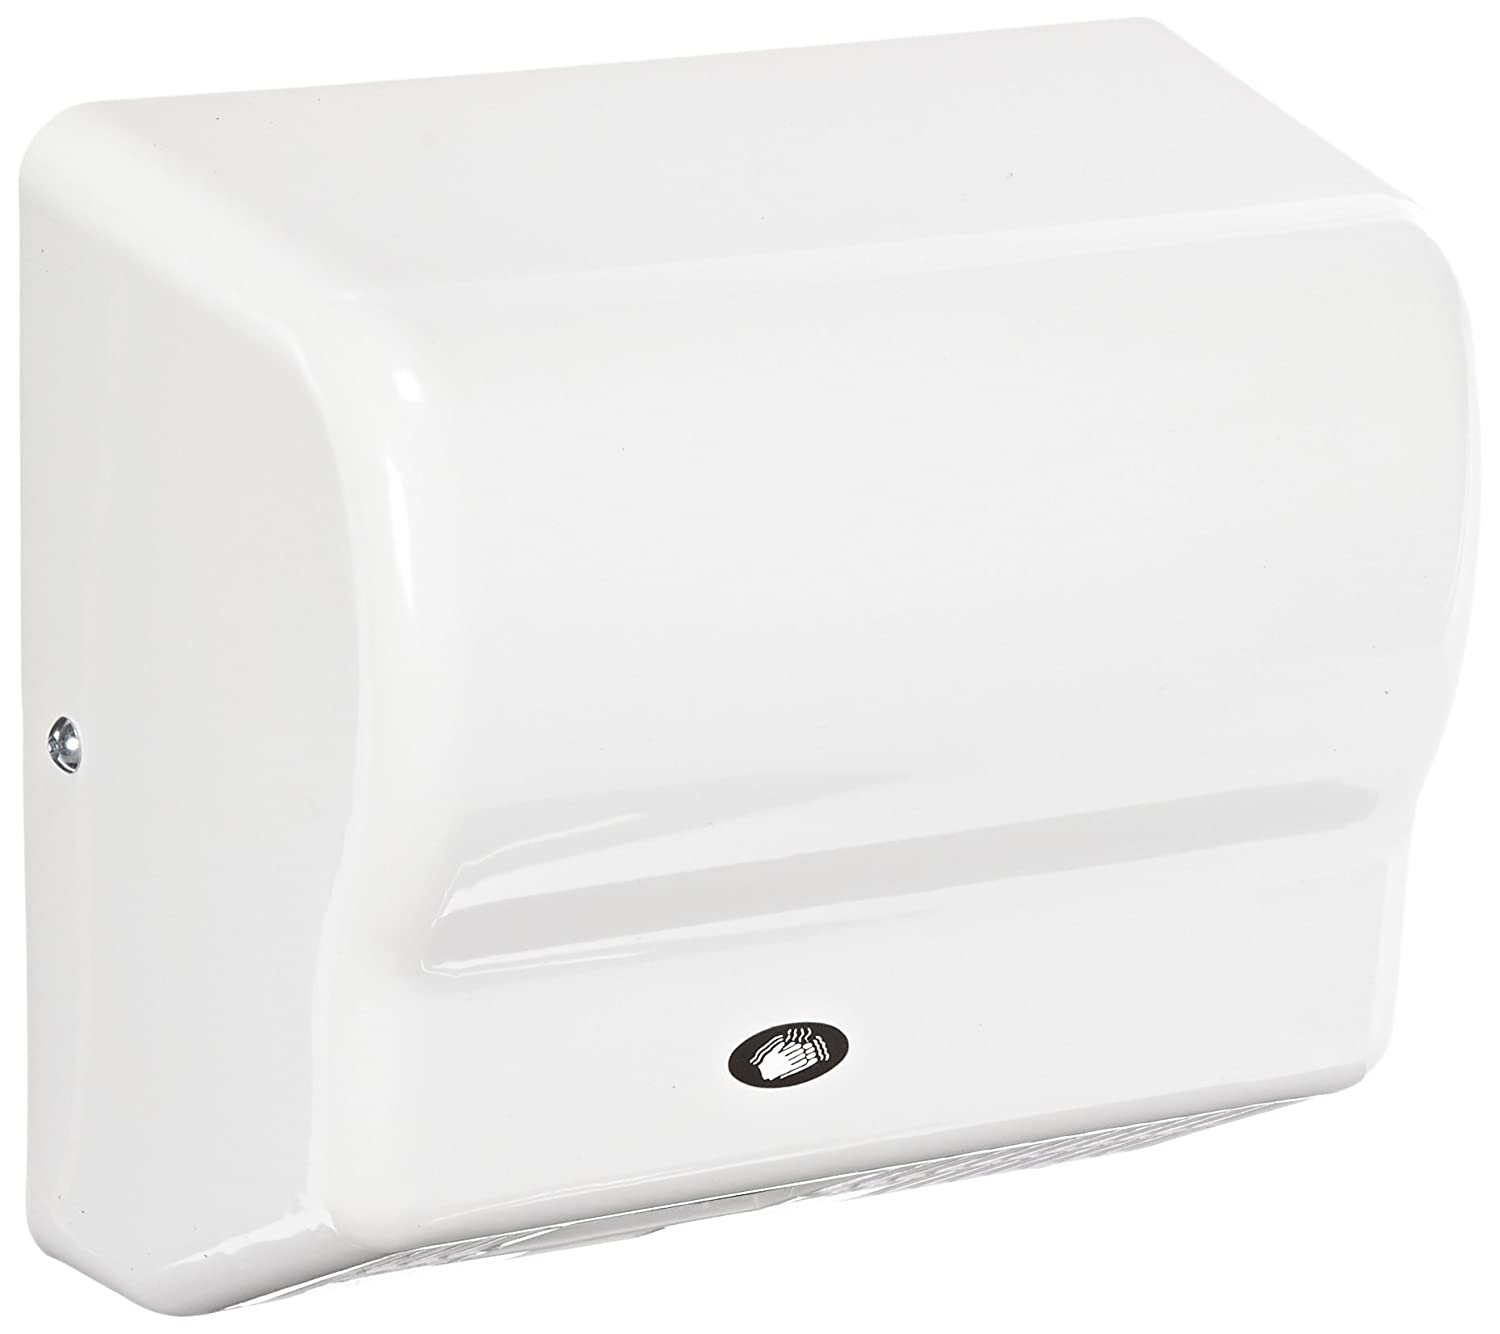 Image of American Dryer Global GX1 ABS Cover Automatic Hand Dryer, 110-120V, 1,500W Power, 50/60Hz, White Hand Dryers